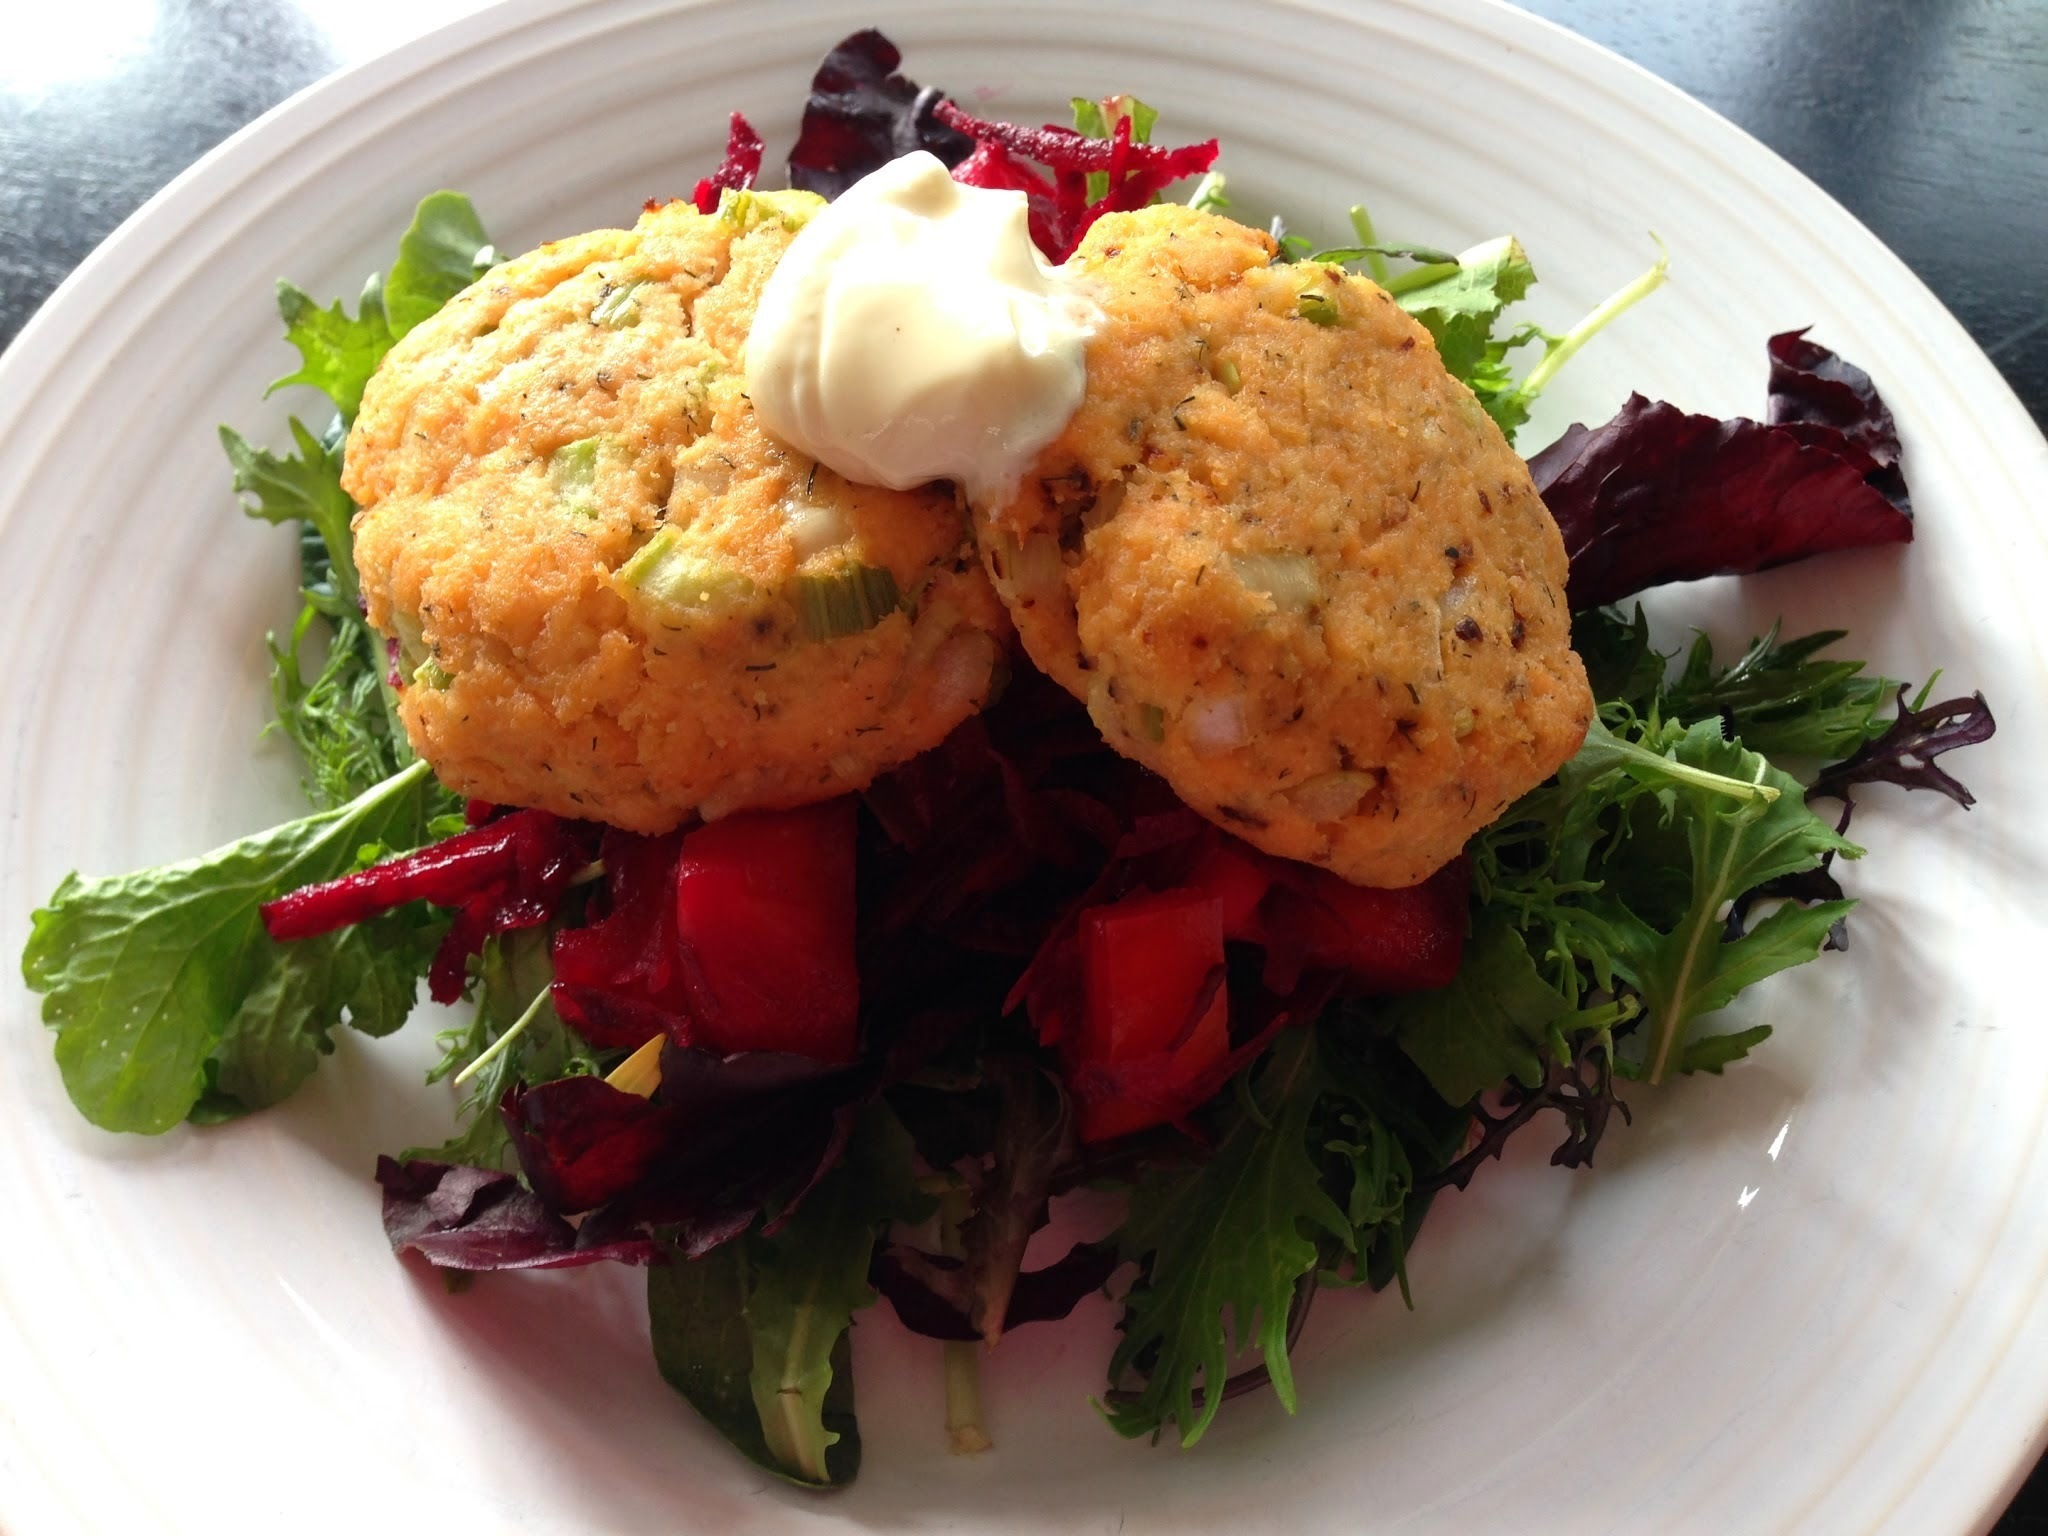 Salmon Cakes with Beetroot Salad and Homemade Mayonnaise